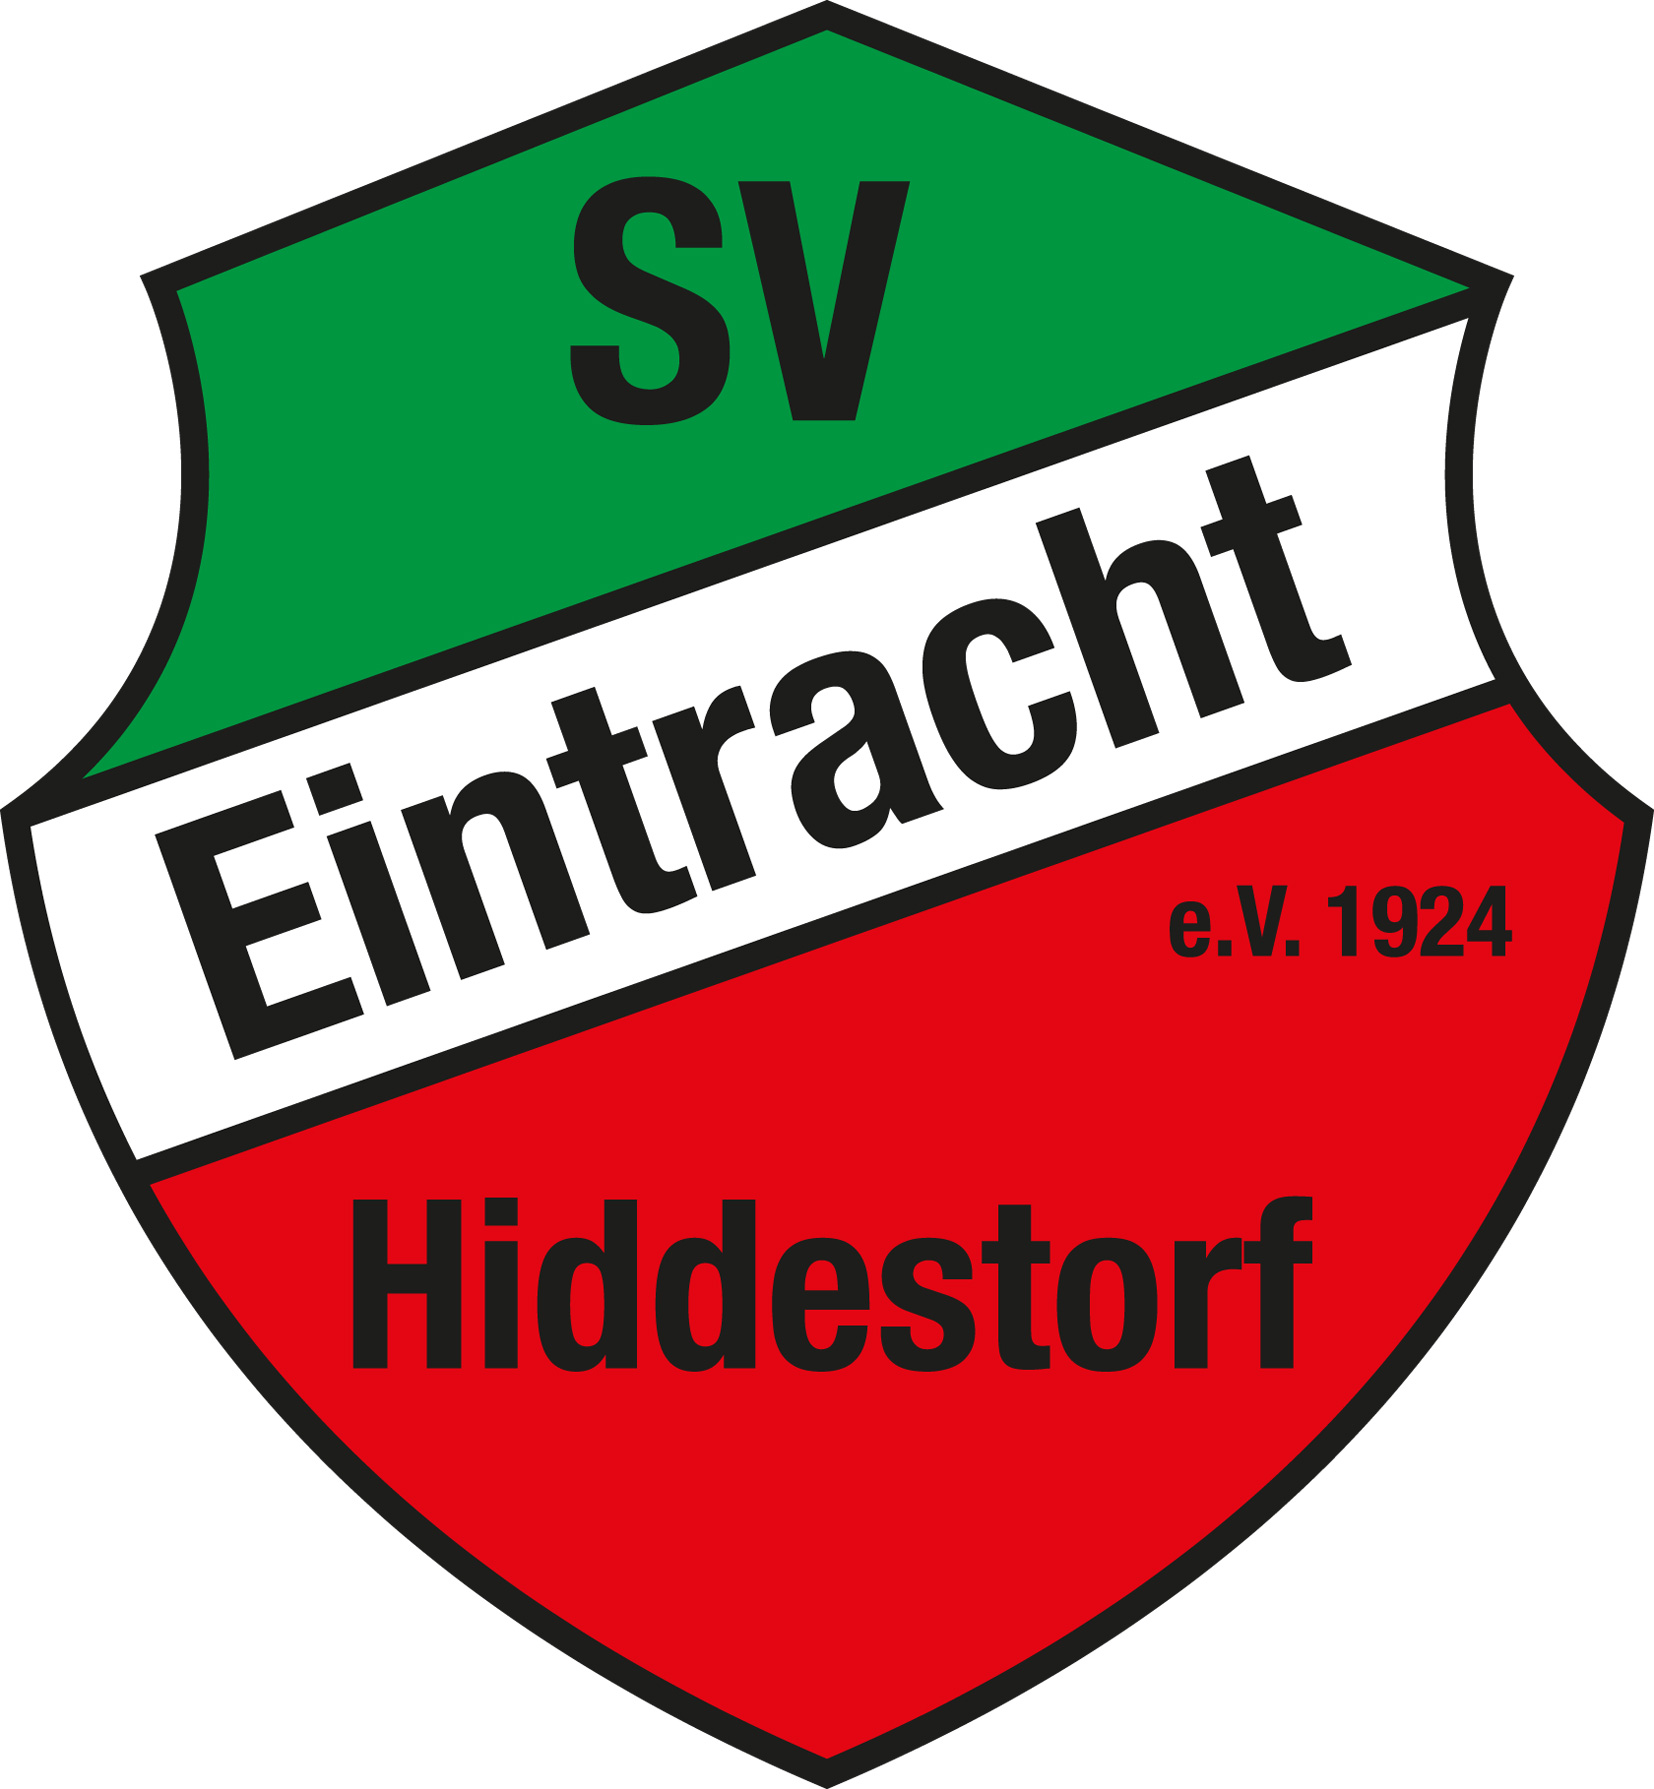 WAPPEN-SV-HIDDESTORF_WEB-optimiert